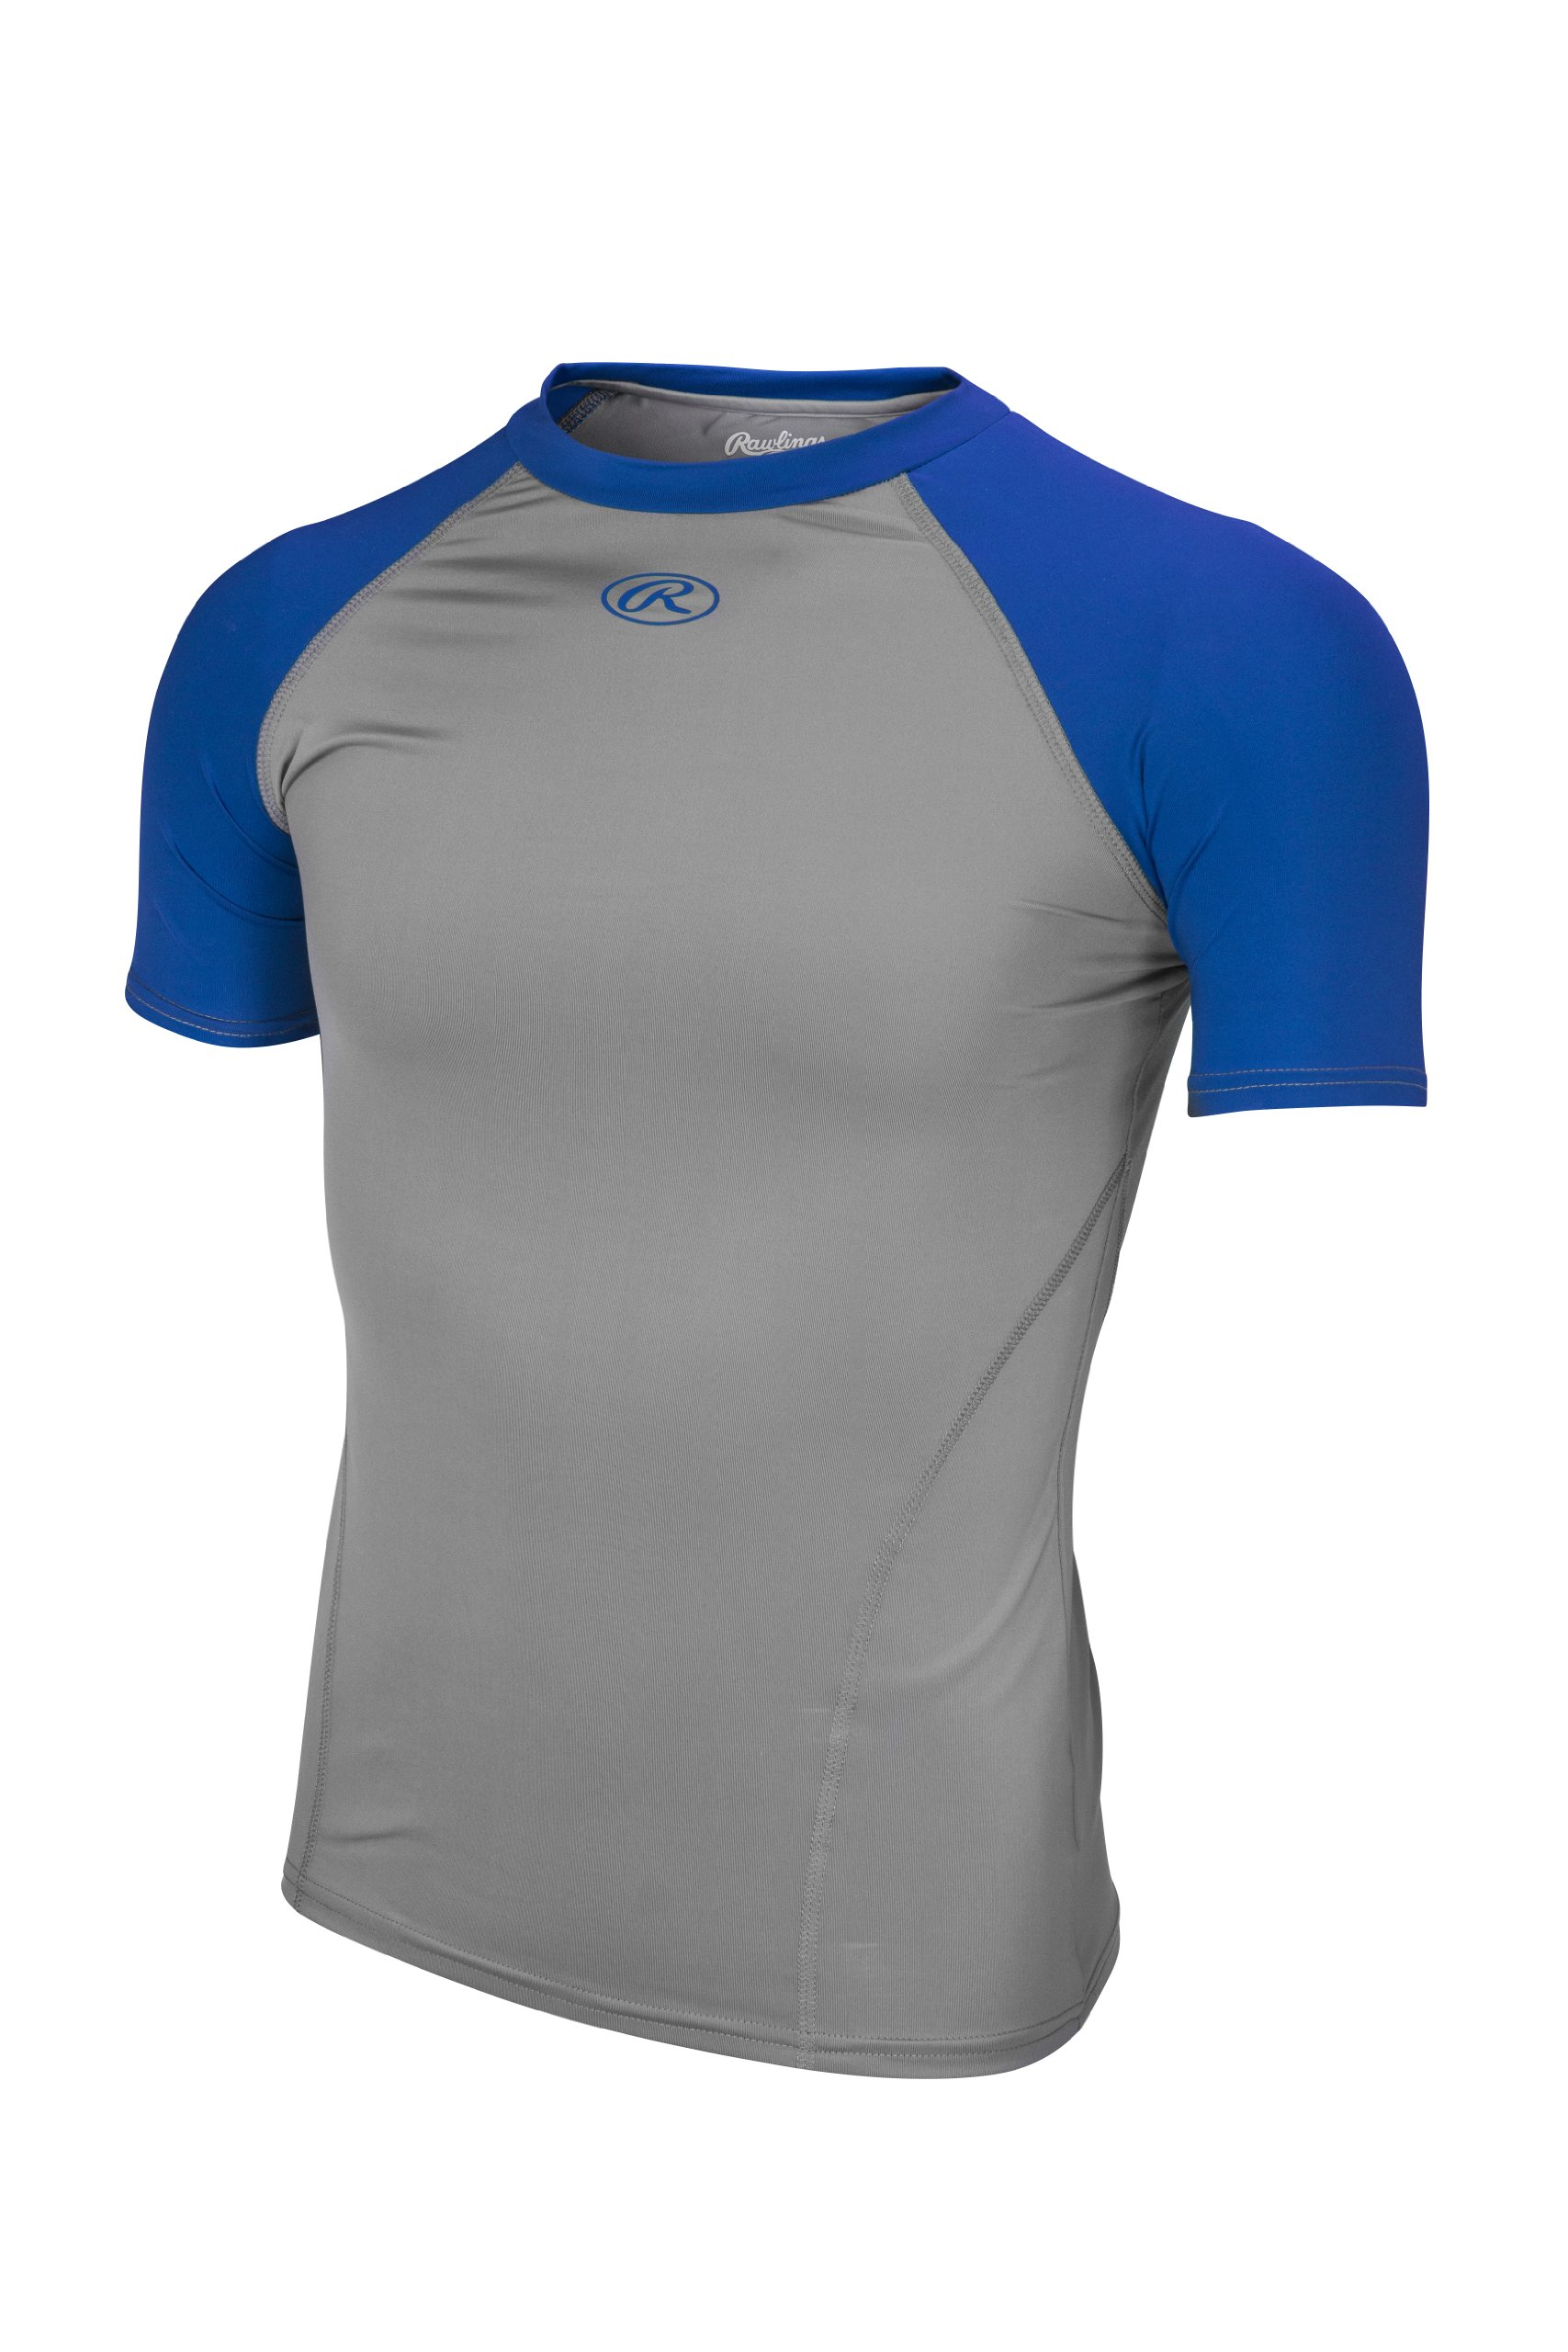 Rawlings Youth Compression Tee, Royal, Large